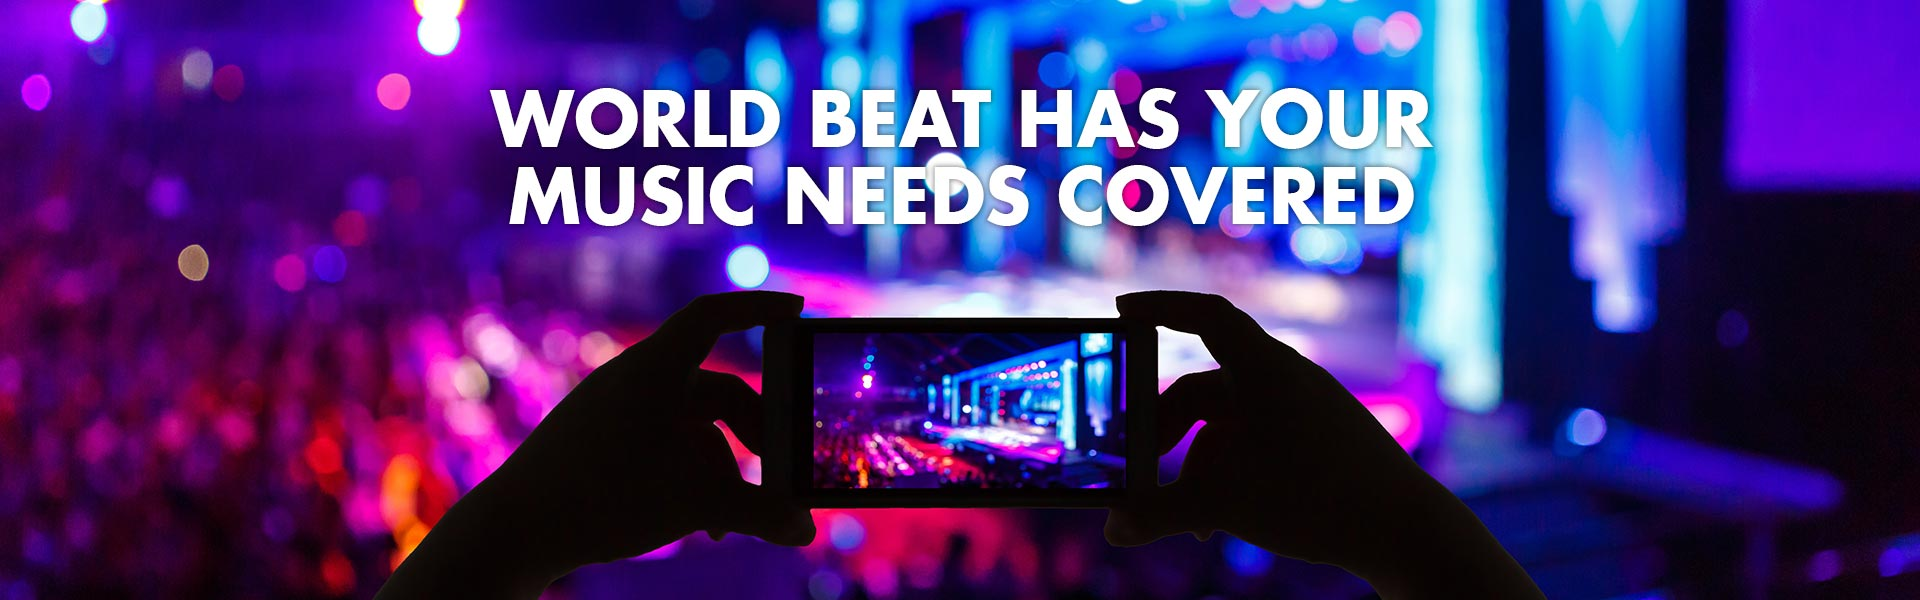 World Beat has your music needs covered!